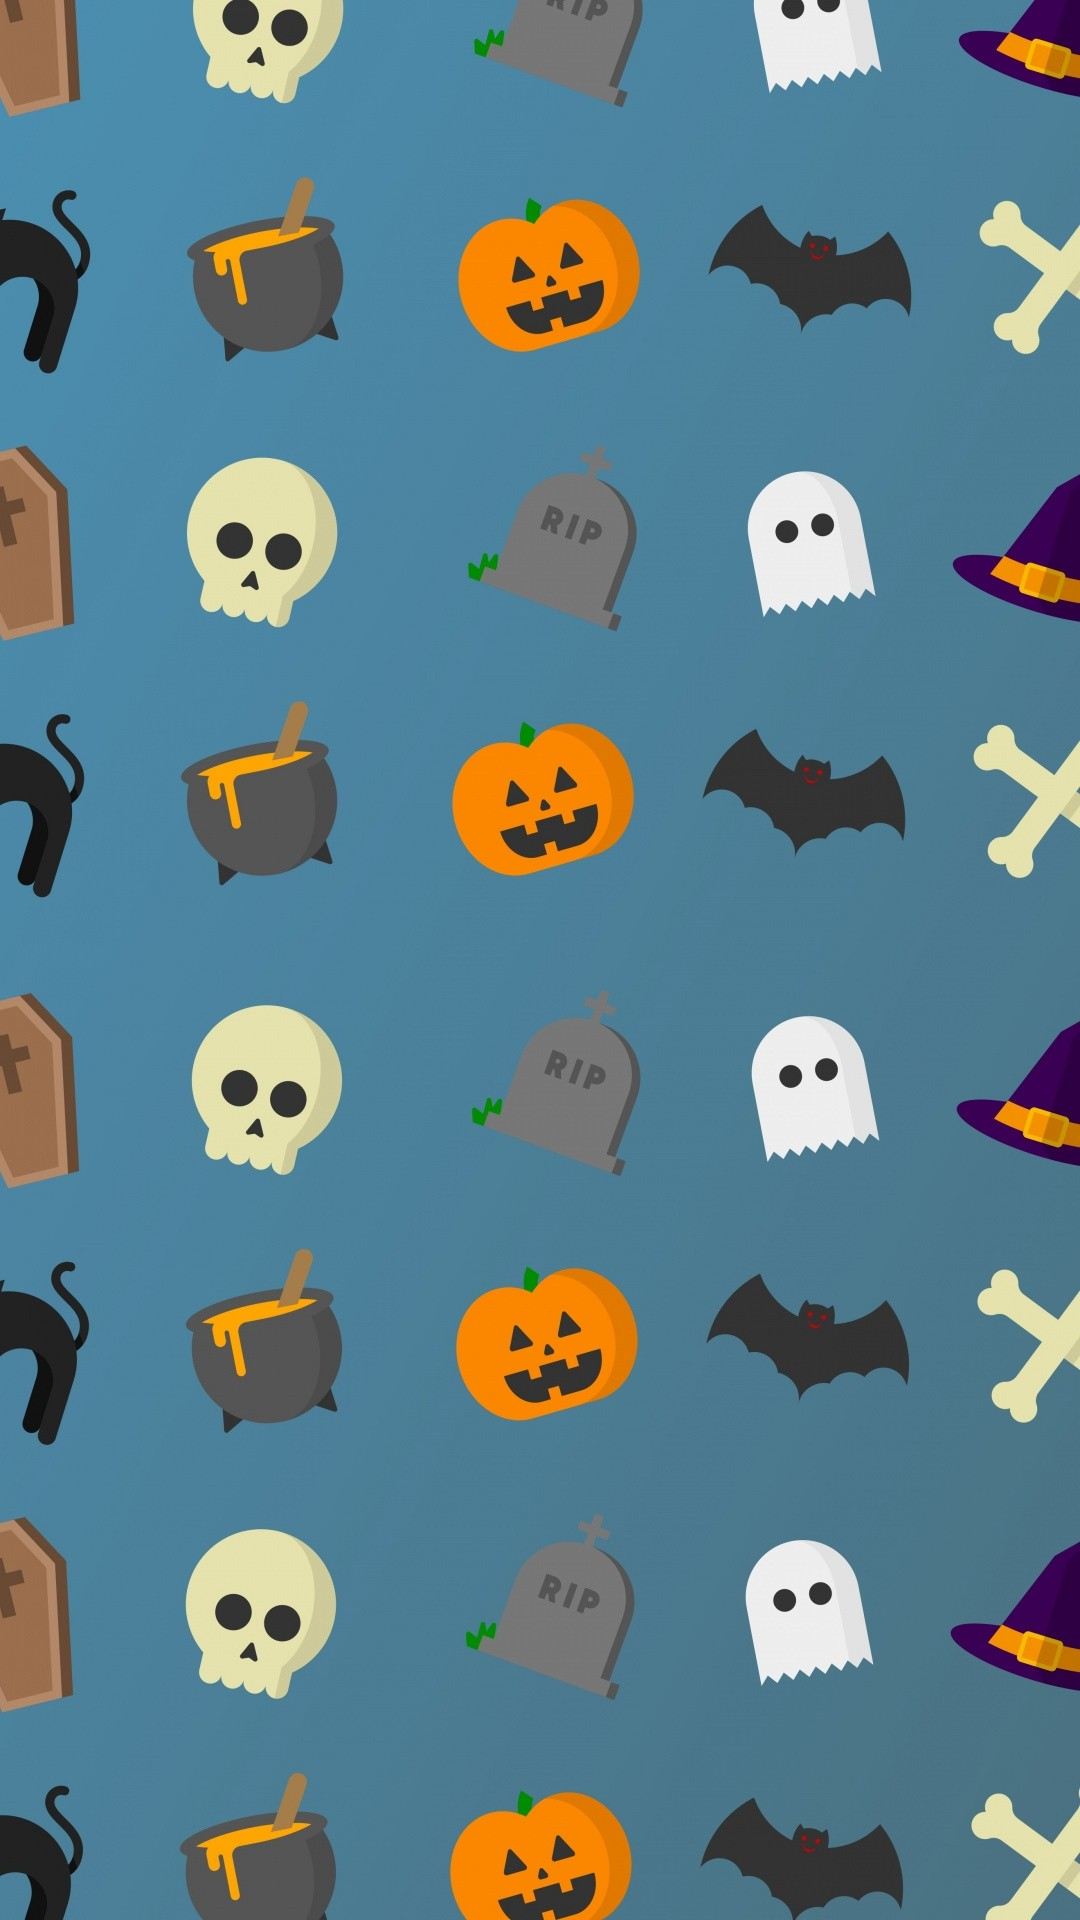 Cute Halloween Iphone Wallpapers 21 Images Wallpaperboat